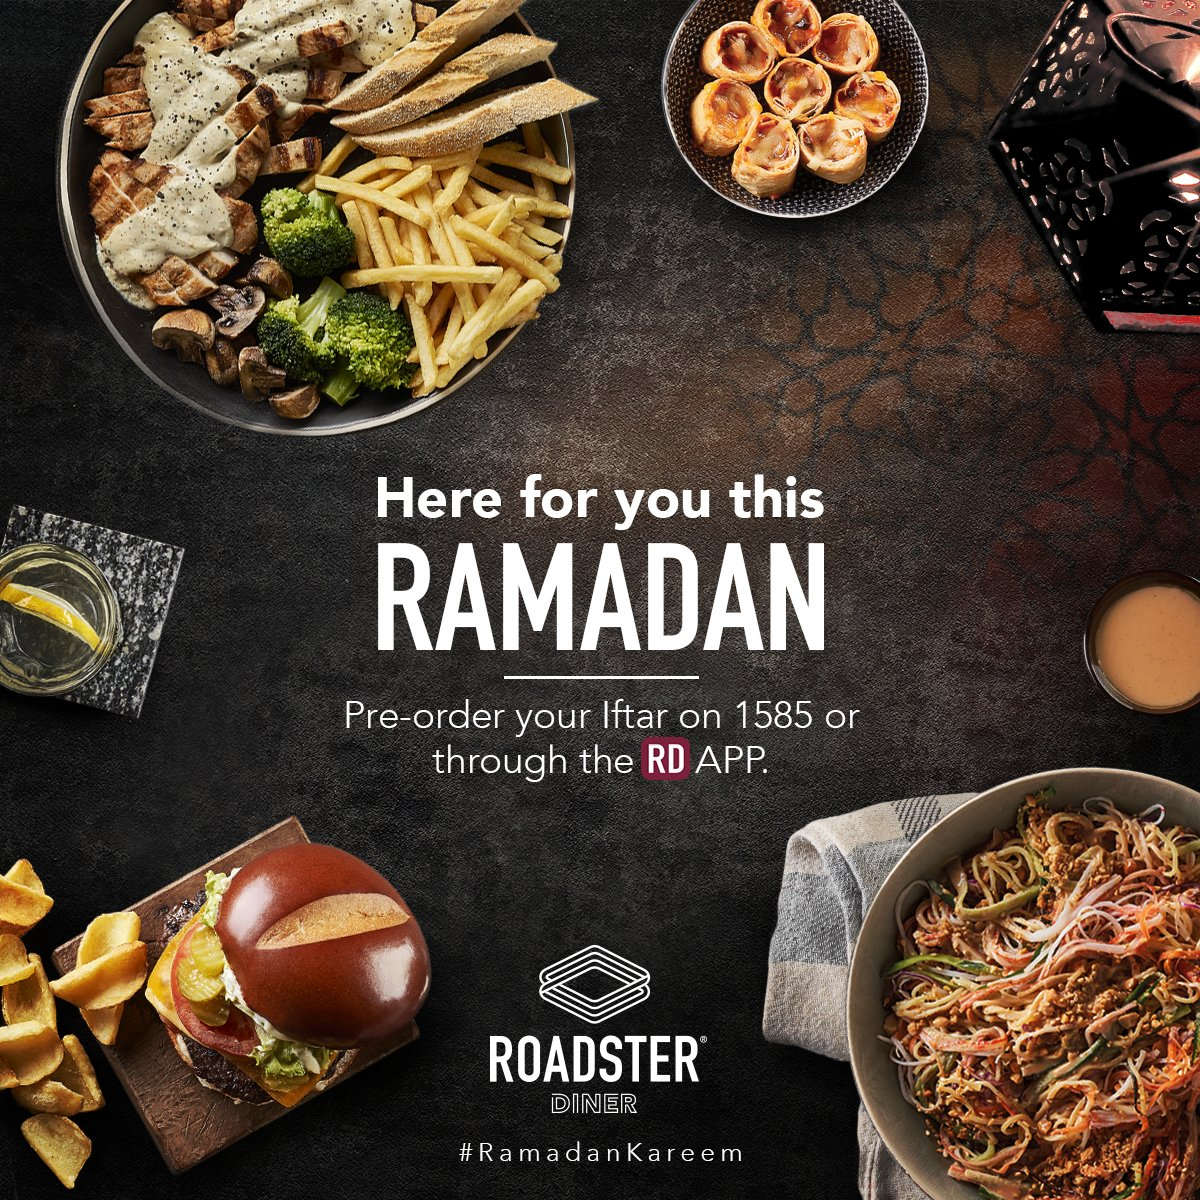 We're here for you this Ramadan! You can pre-order your iftar on 1585 or through the RD App. #ramadankareem https://t.co/TEA061rZ7h